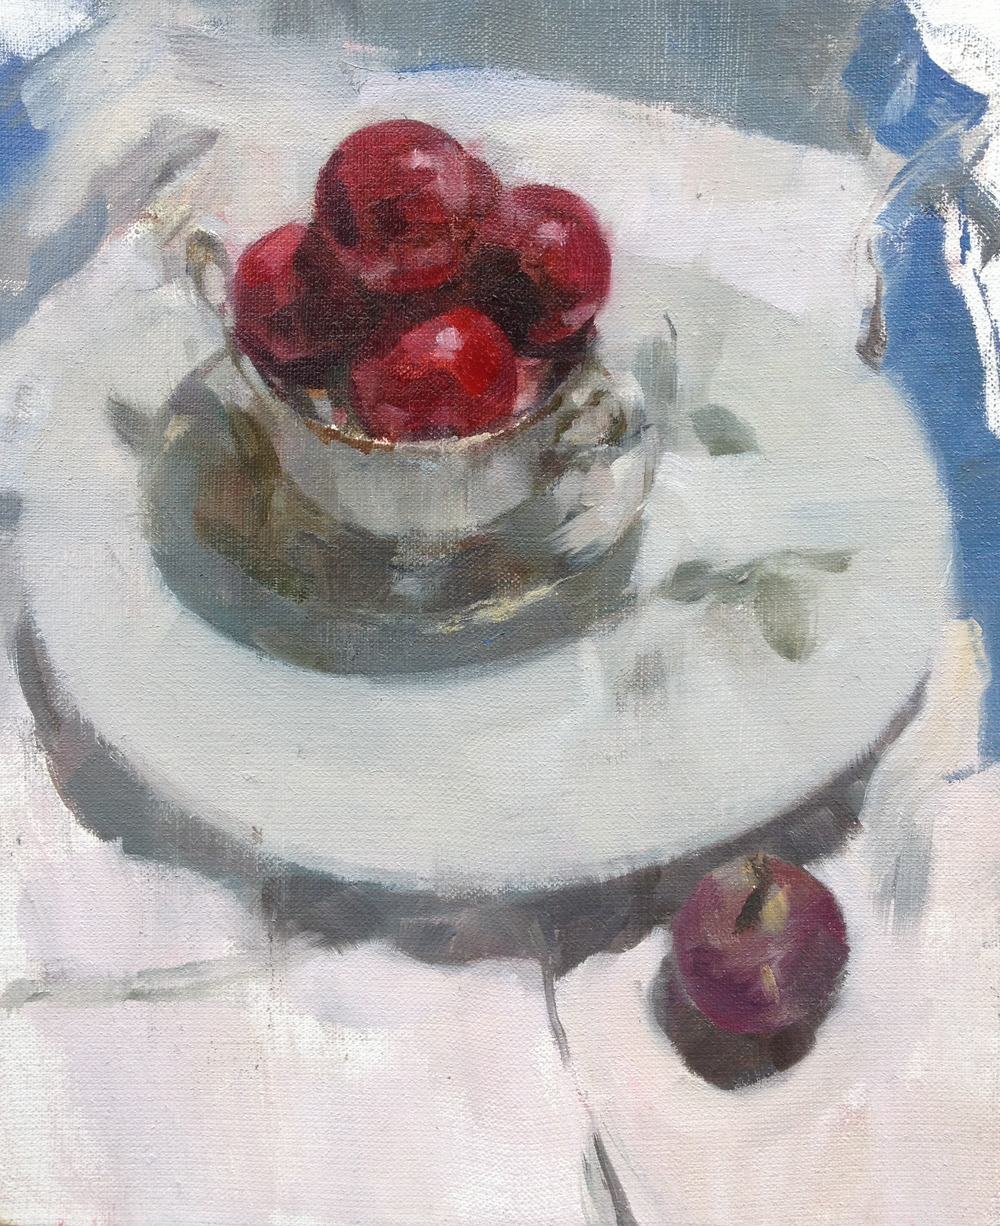 Plums and Fig, oil on linen, 31 cm x 25.5 cm